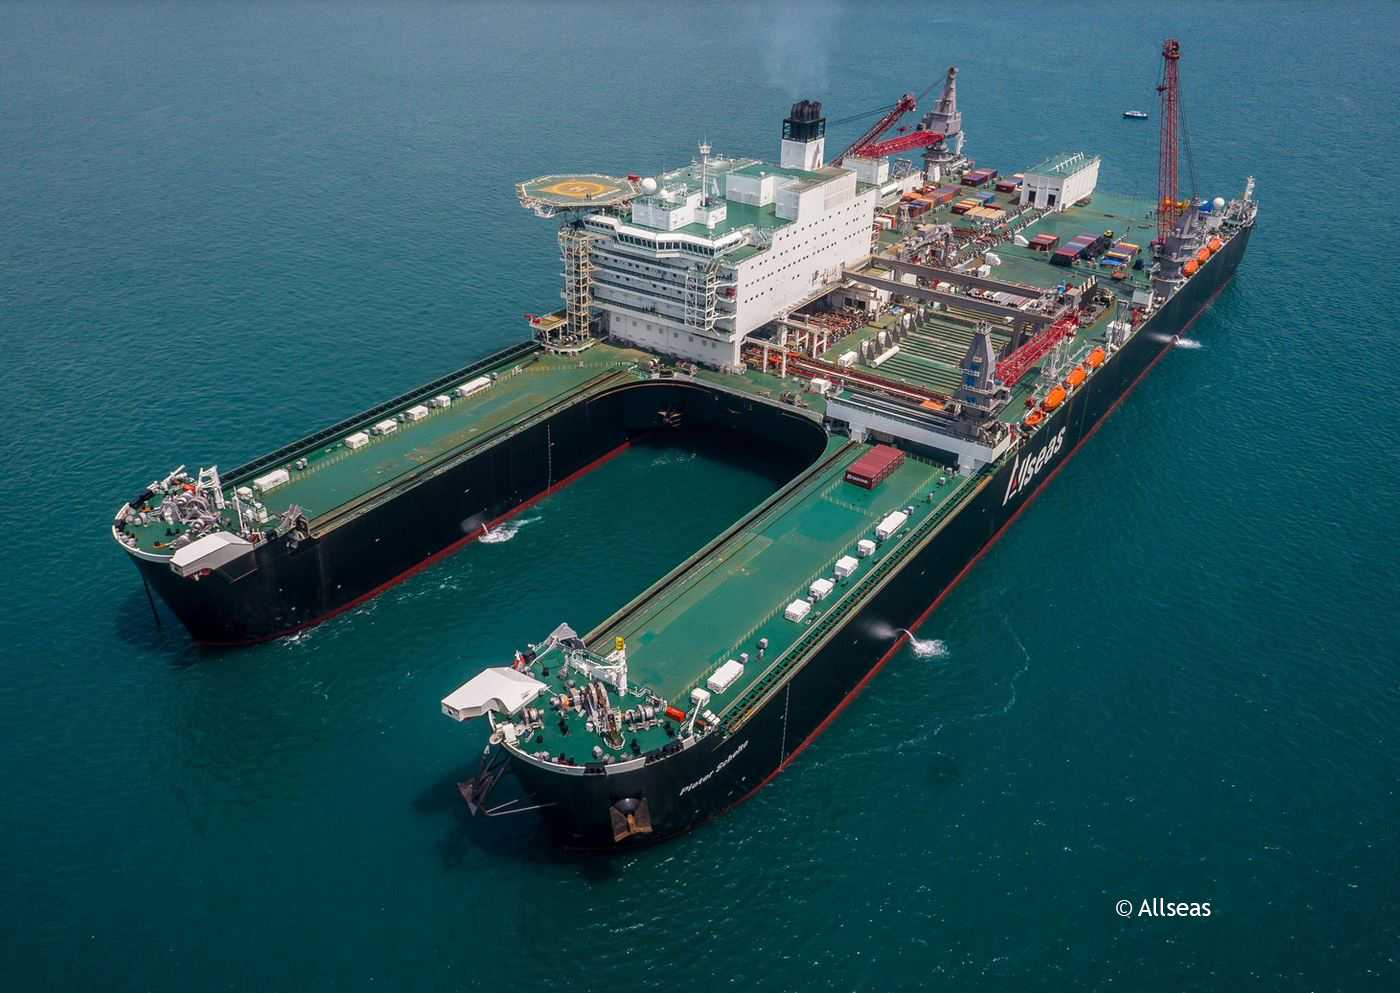 Pioneering Spirit D.P. Platform Installation/Removal and Pipelay Vessel - Allseas